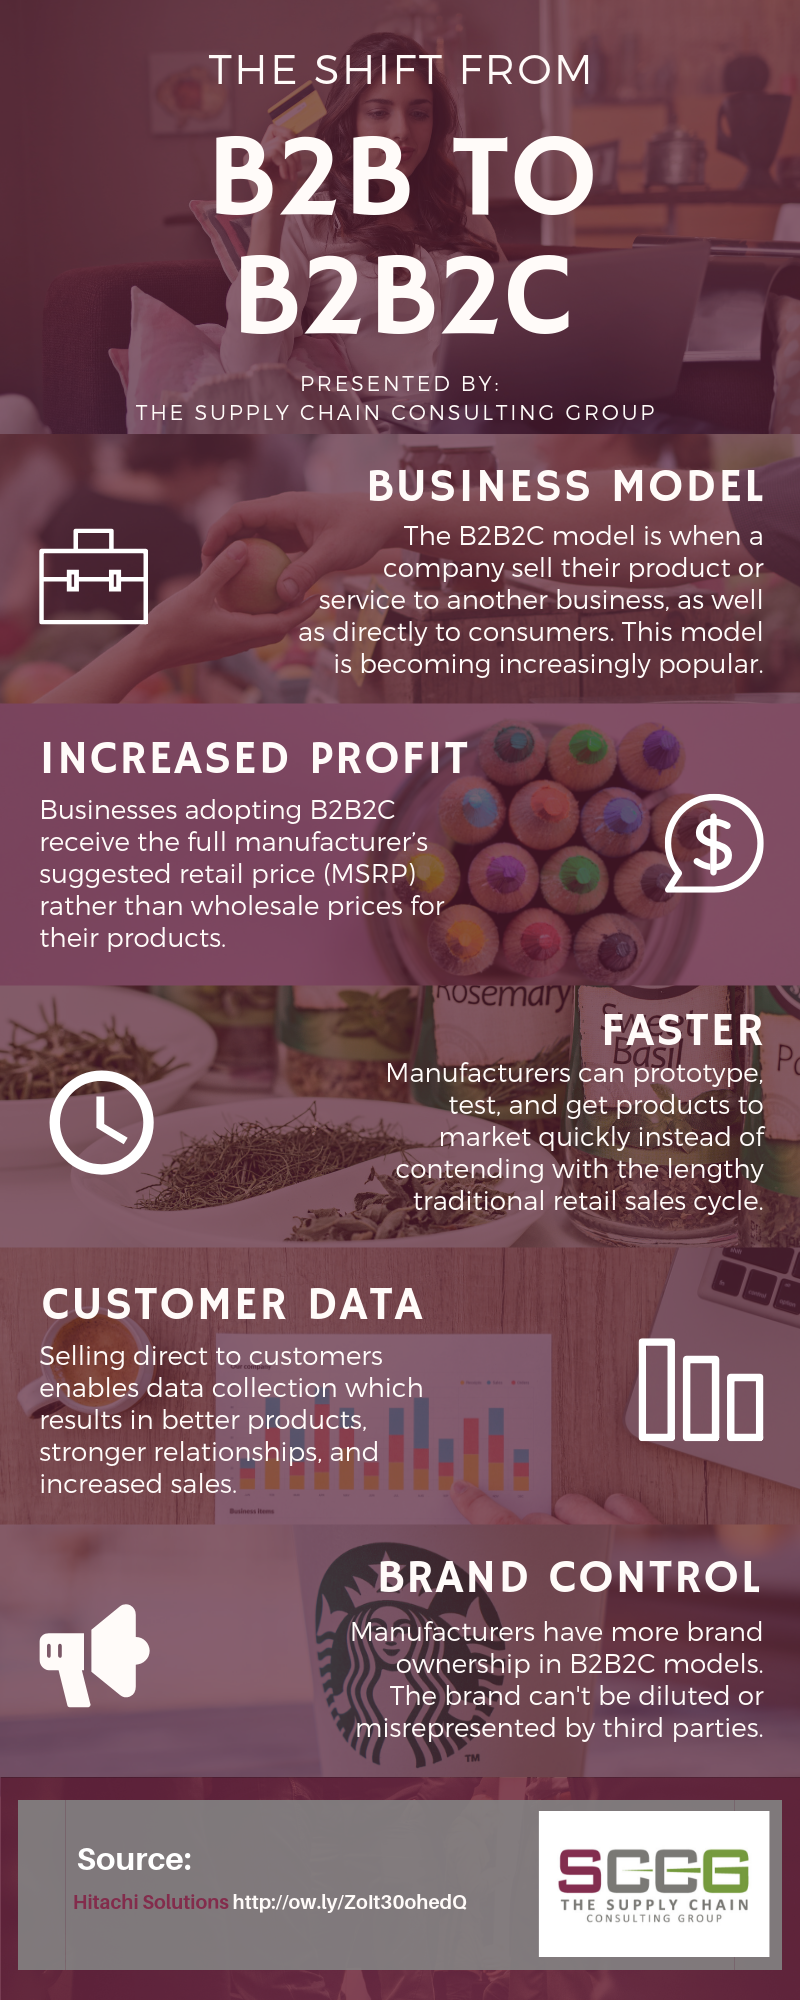 Pin By Ridwan Krisnadi On Infographics Business Strategy Management Relationship Marketing Business Infographic